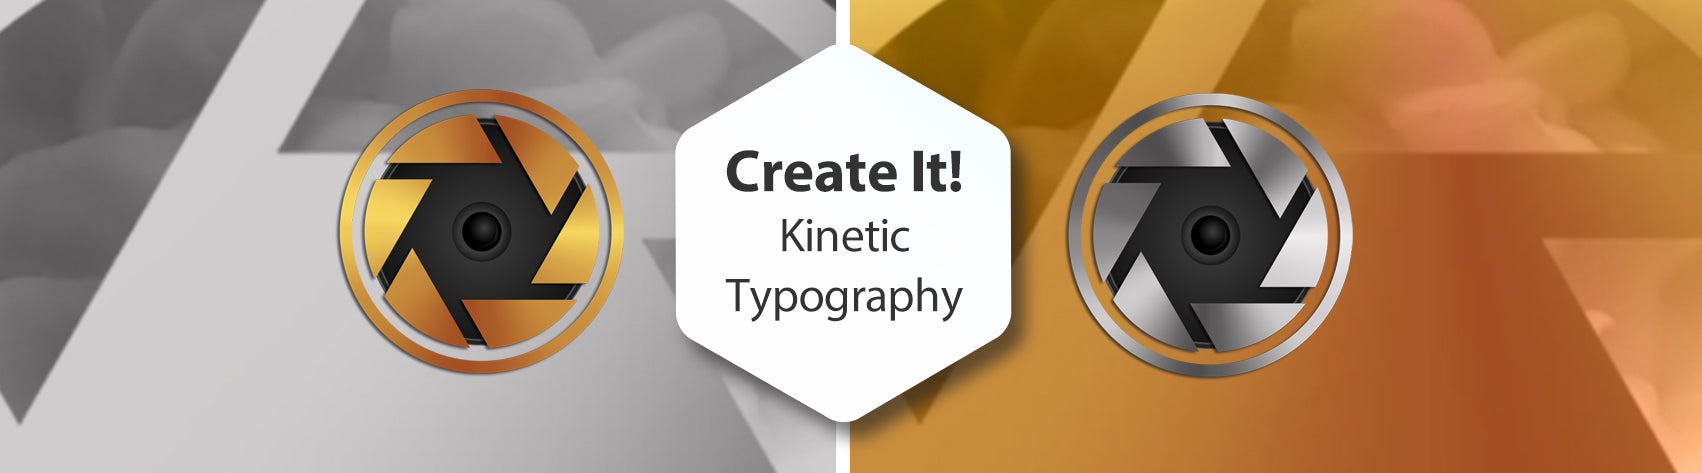 Create It! Kinetic Typography